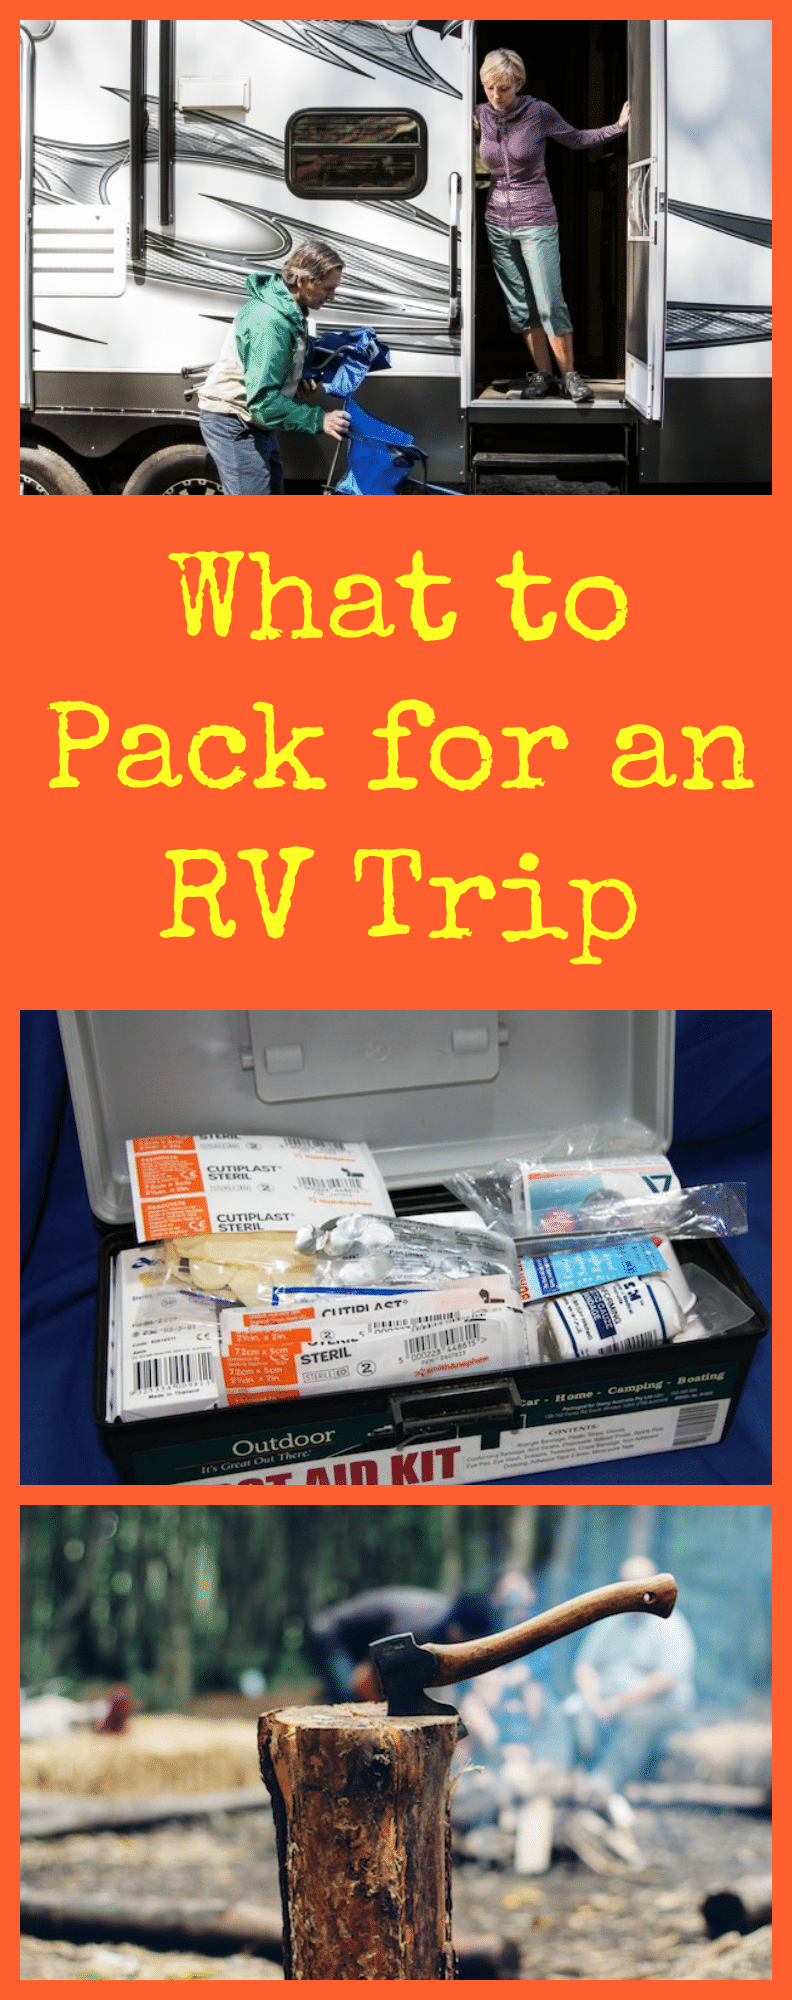 What to Pack for an RV Trip